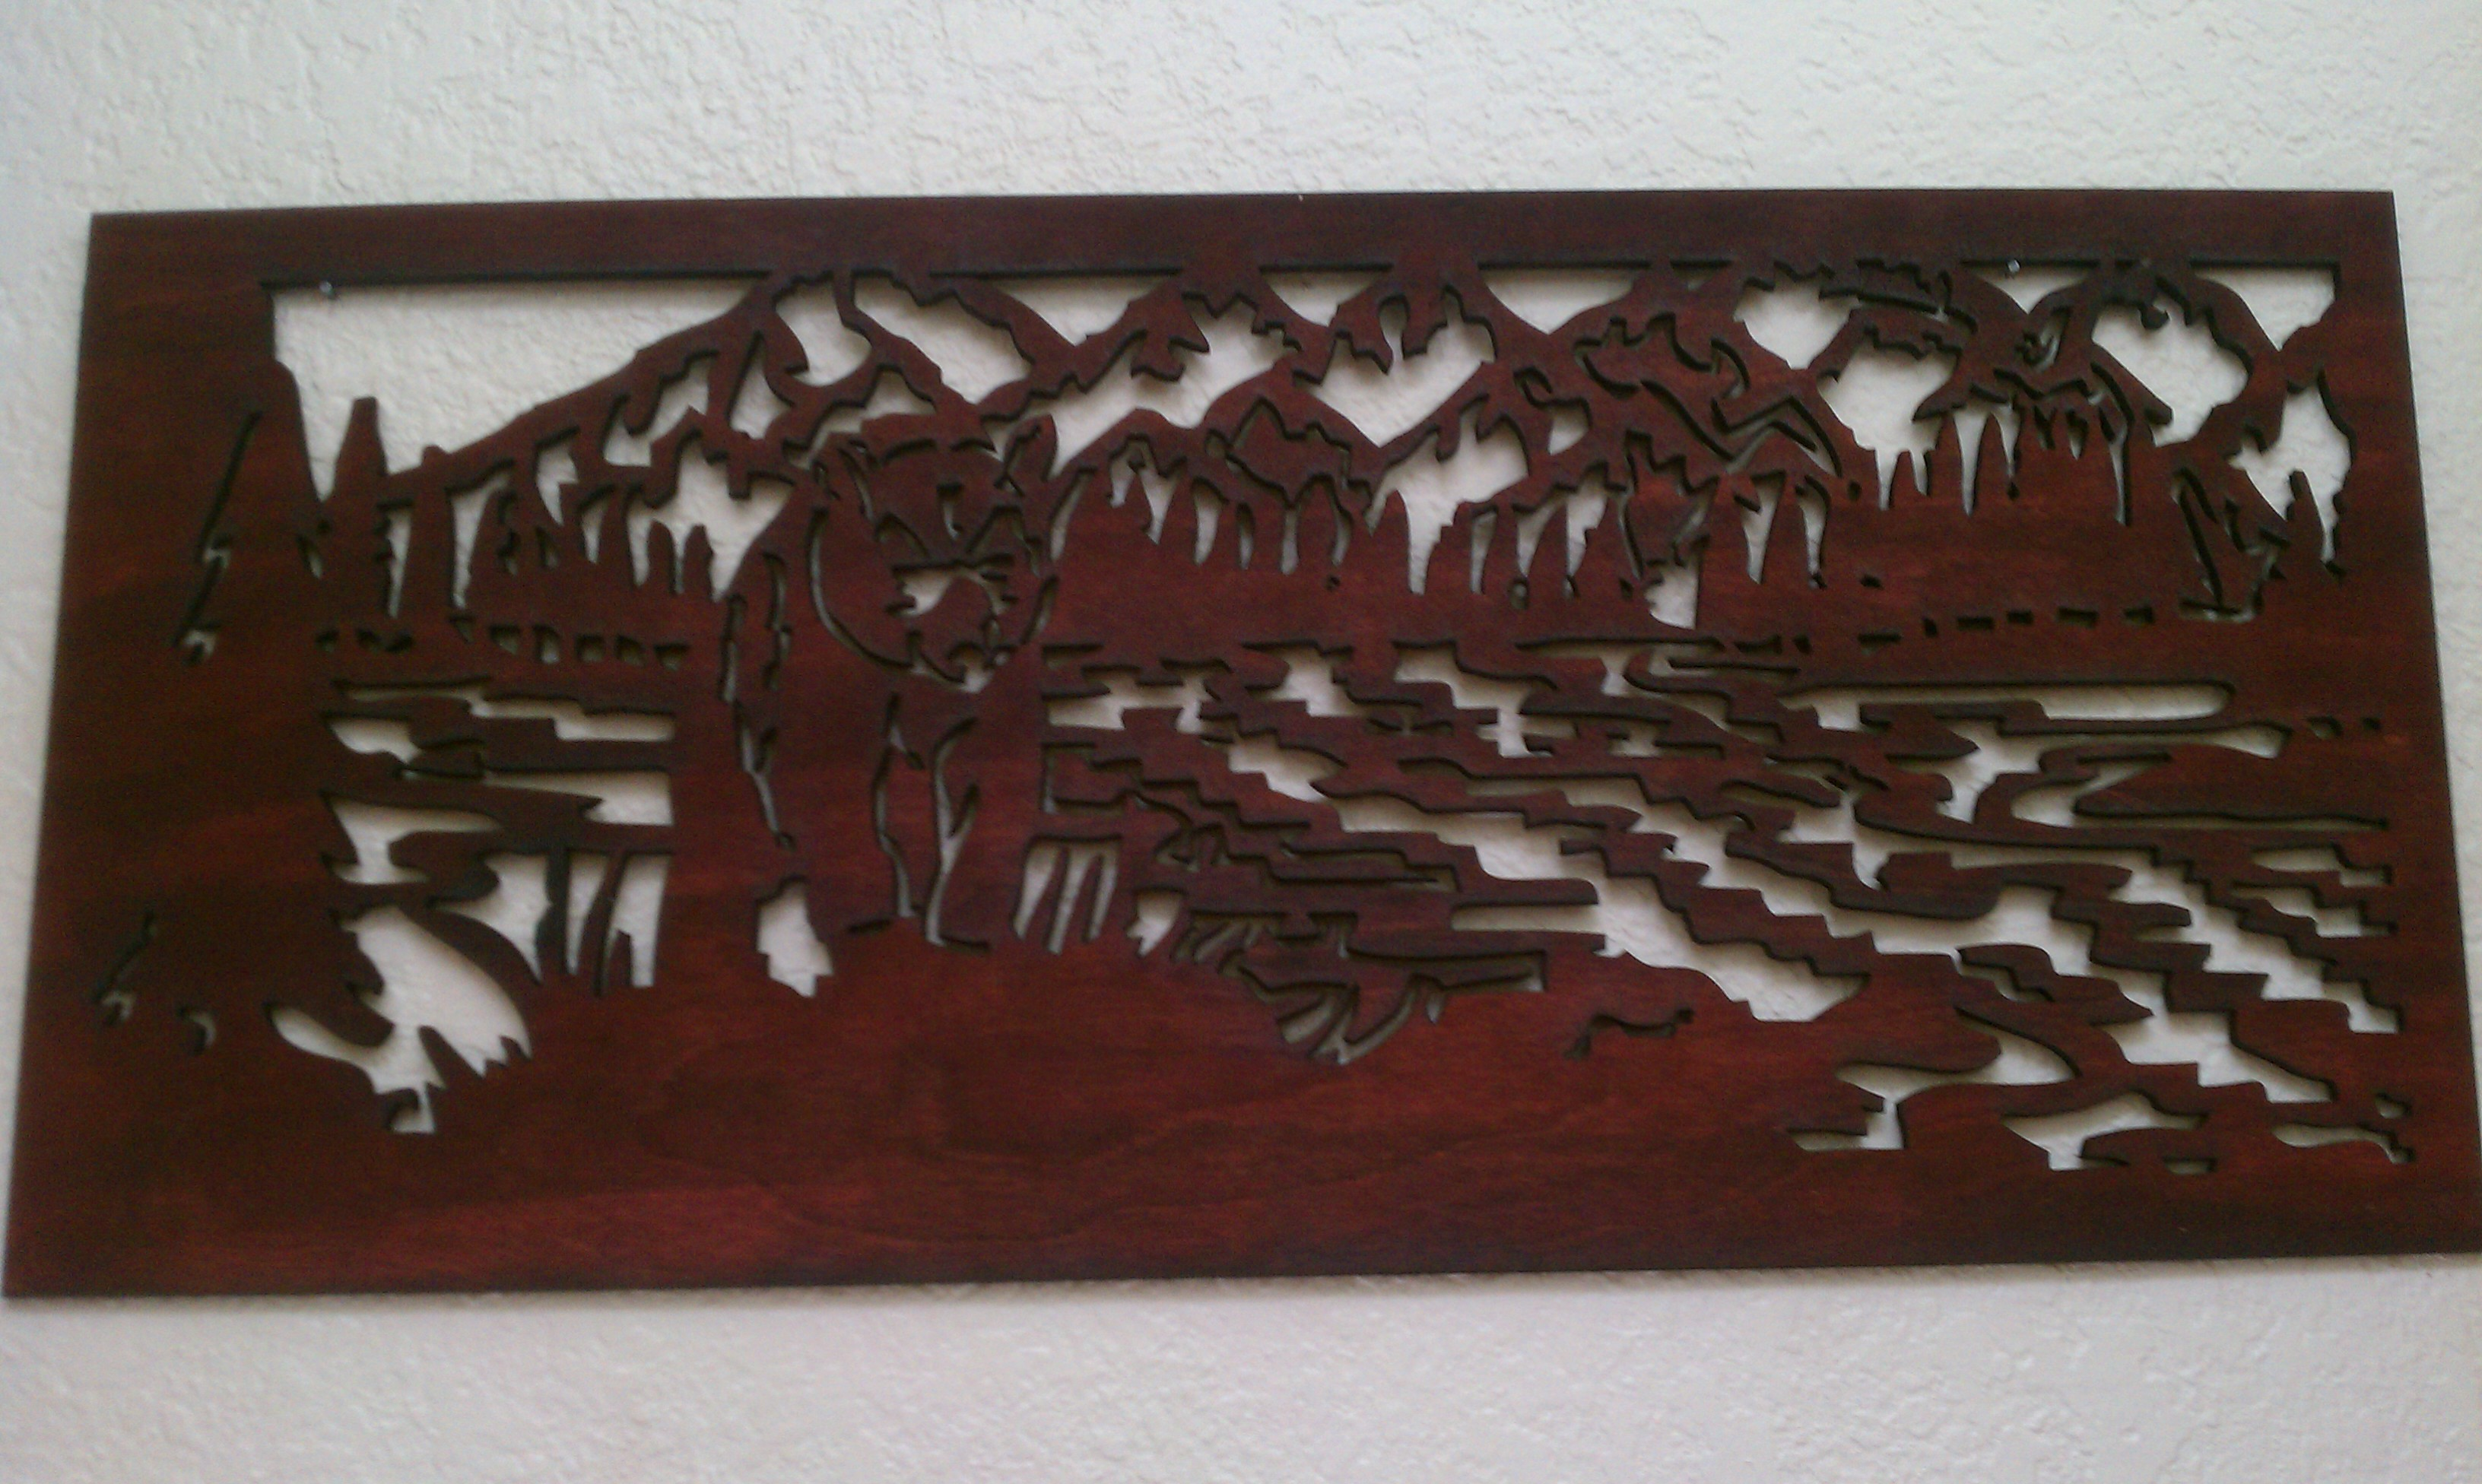 Picture of Laser Cut Fretwork Wall Hanging